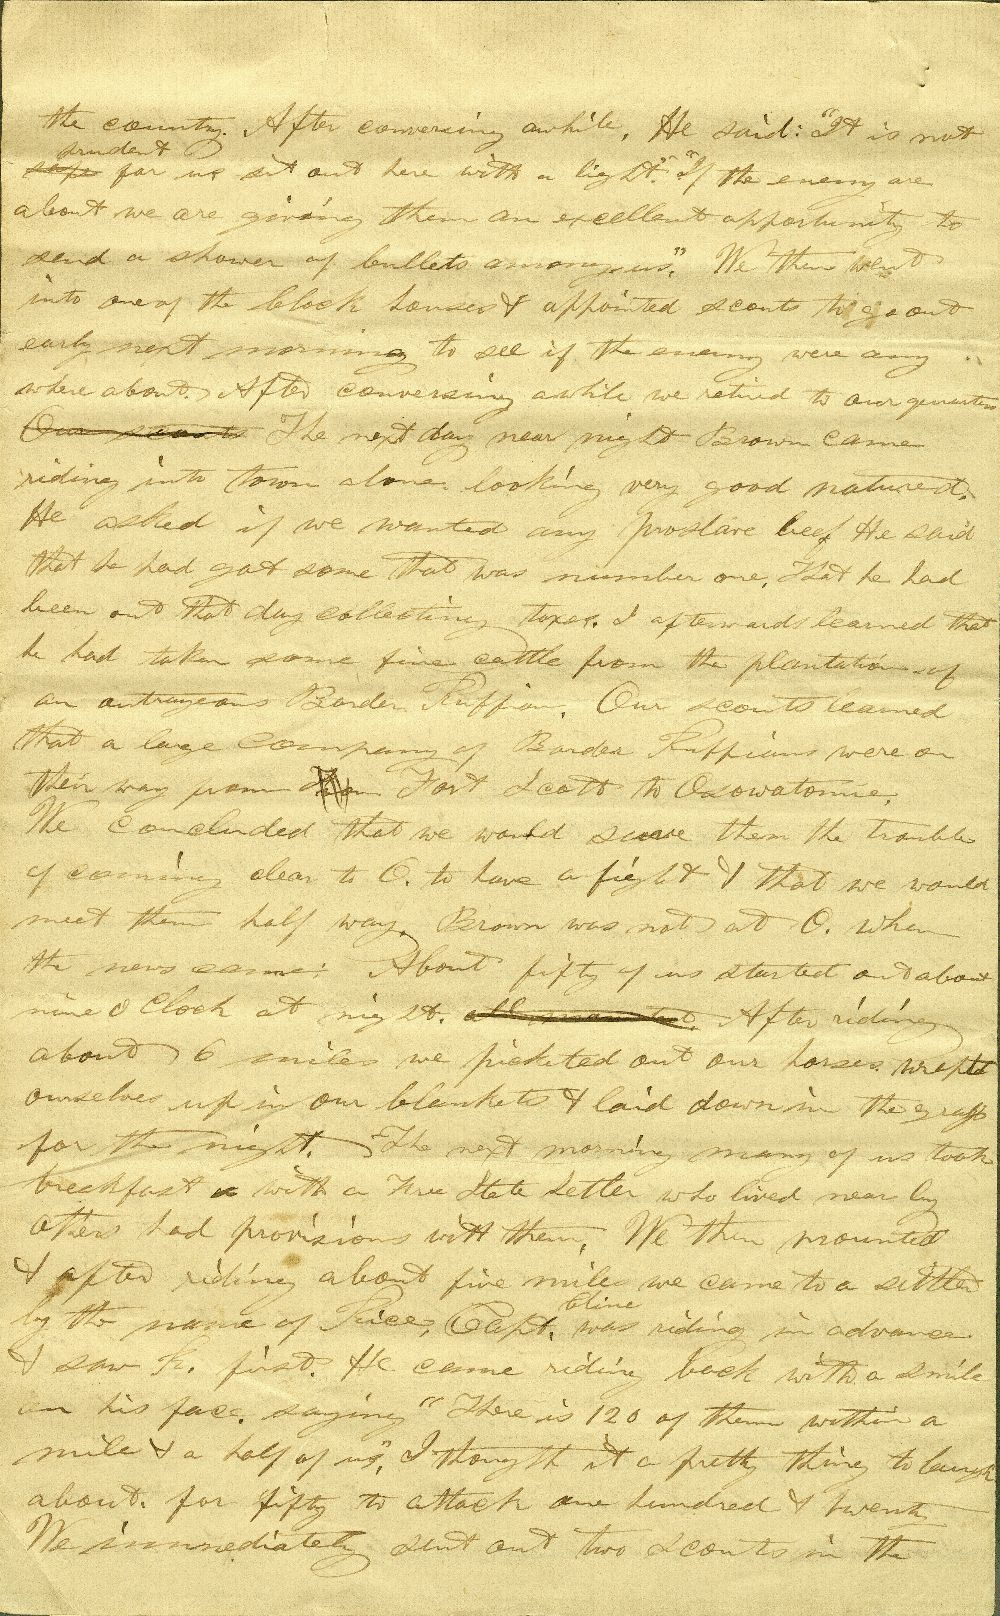 C. G. Allen's response to Redpath and Hinton's call for information about John Brown - 4